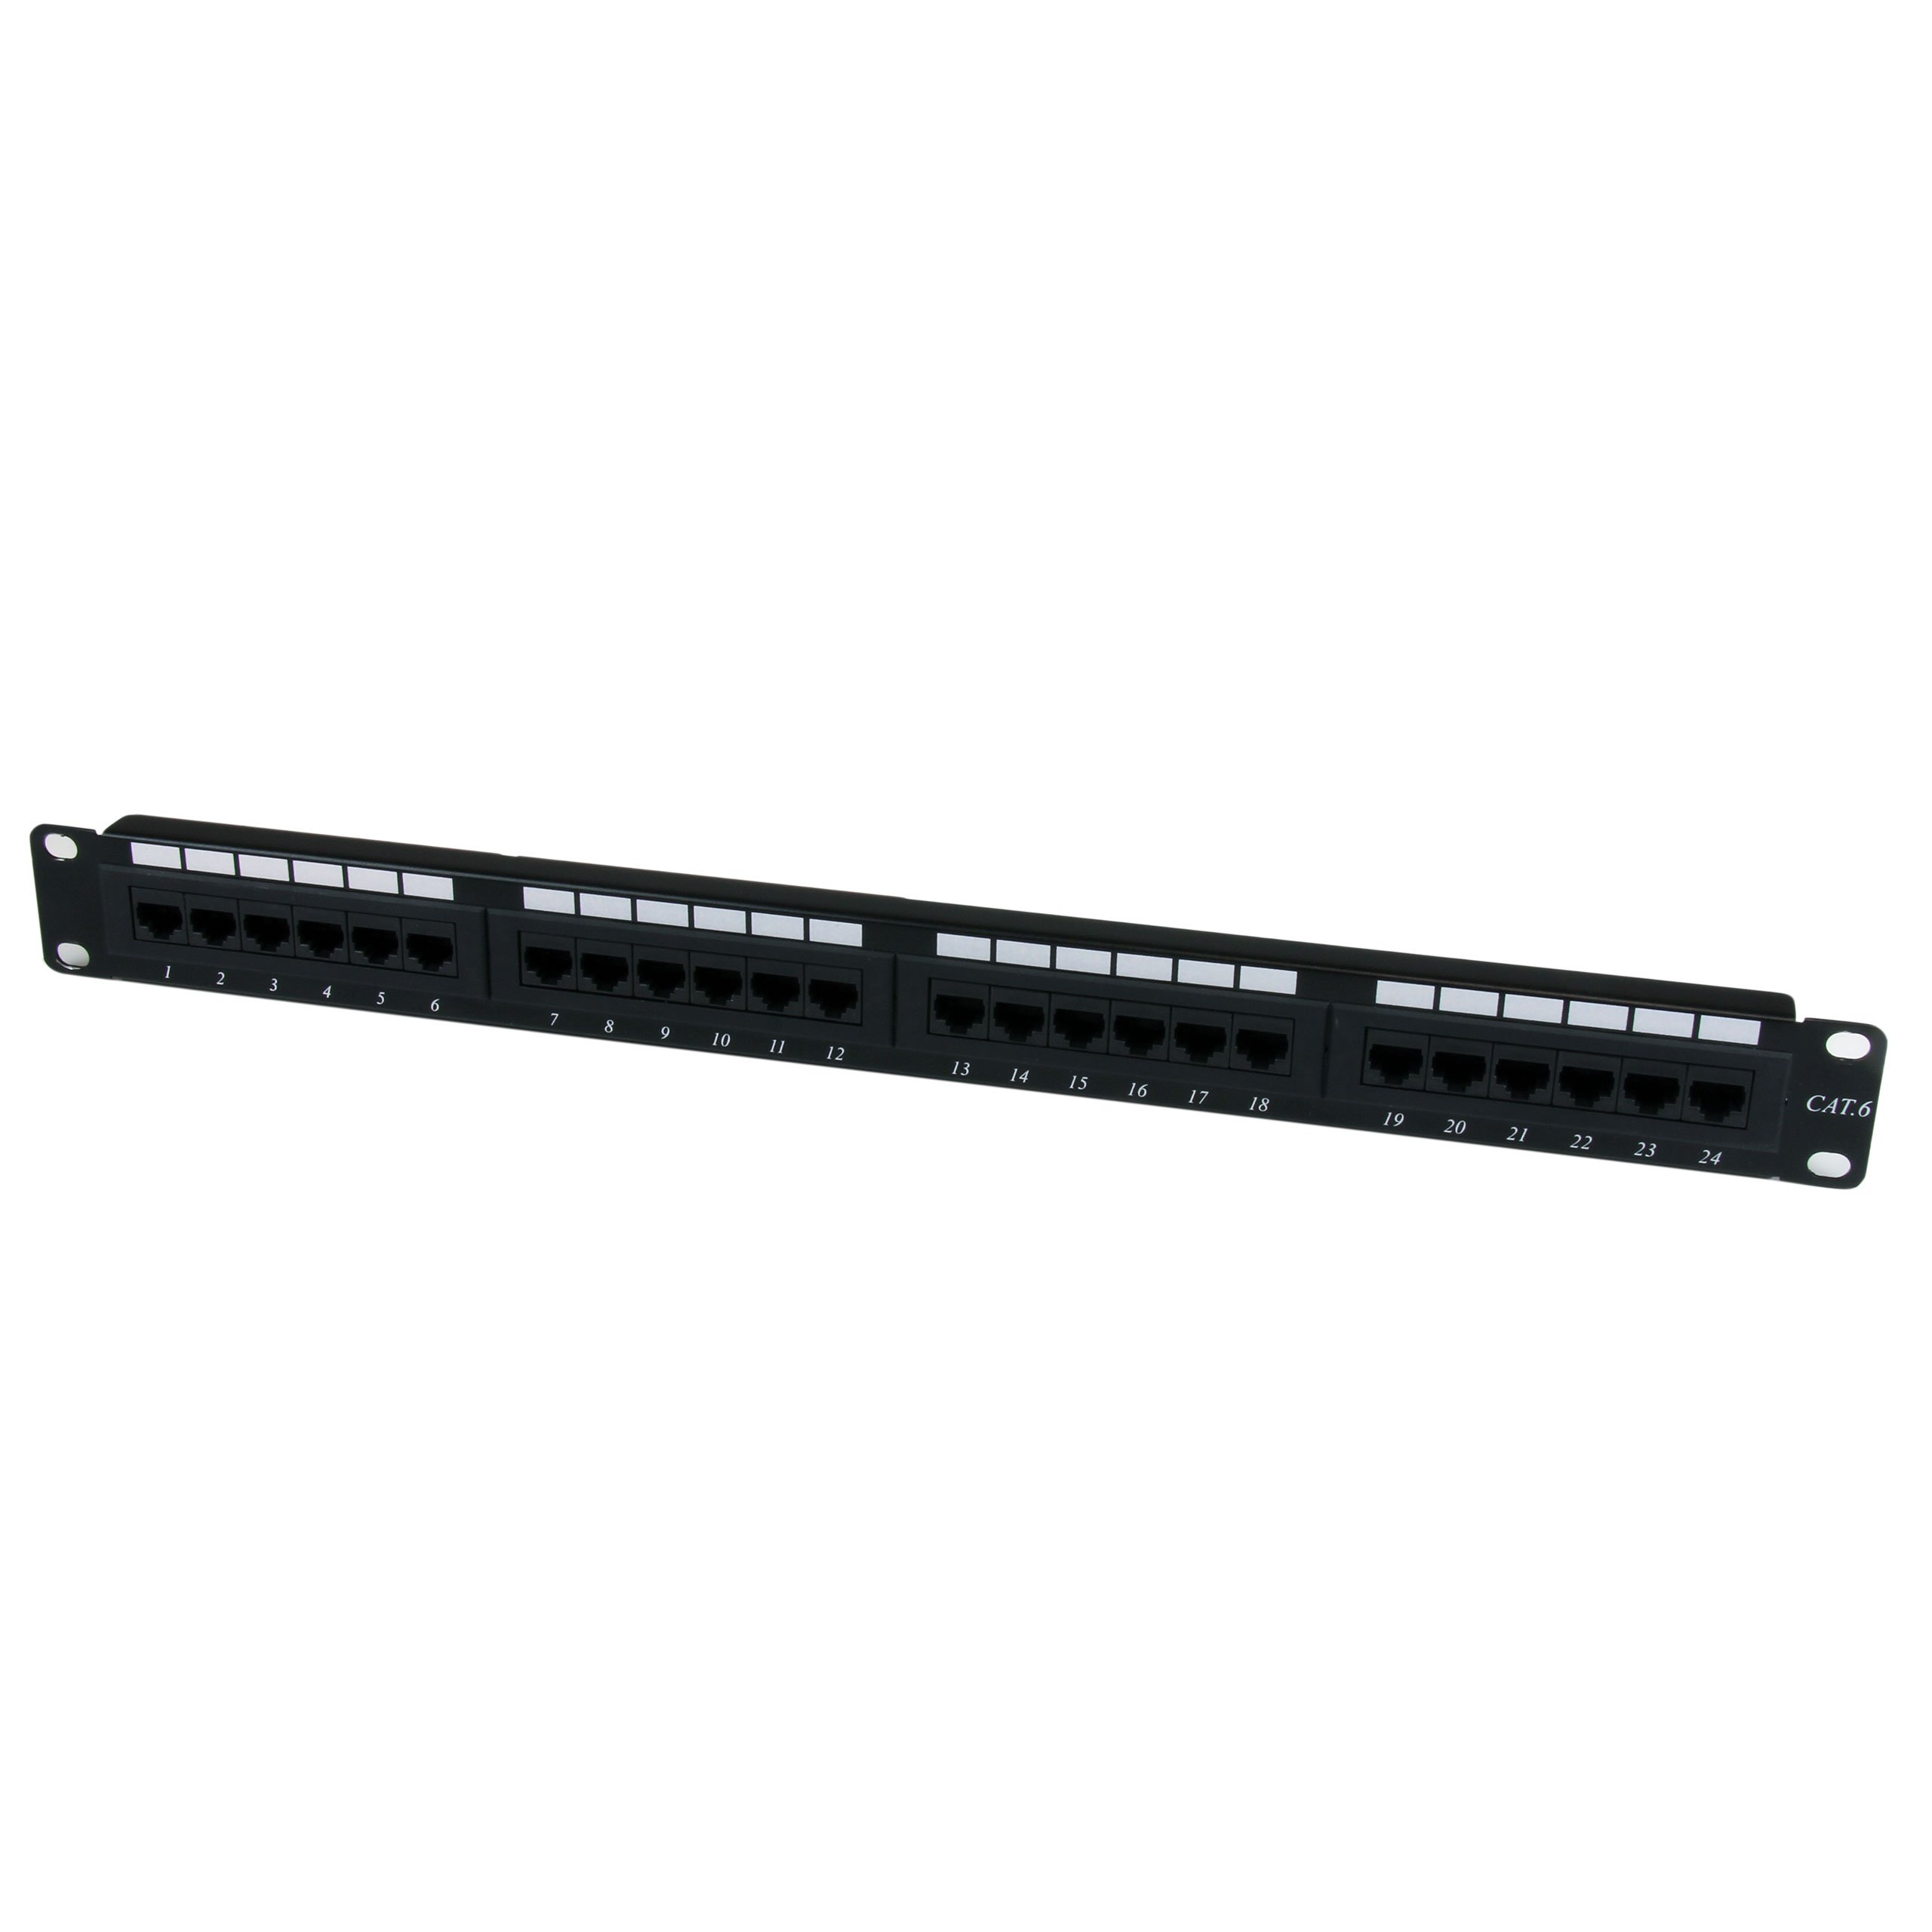 24 Port 1U Rackmount Cat 6 110 Patch Panel - 24 port Network Patch Panel - RJ45 Ethernet 110 type Rack Mount Patch Panel 1U